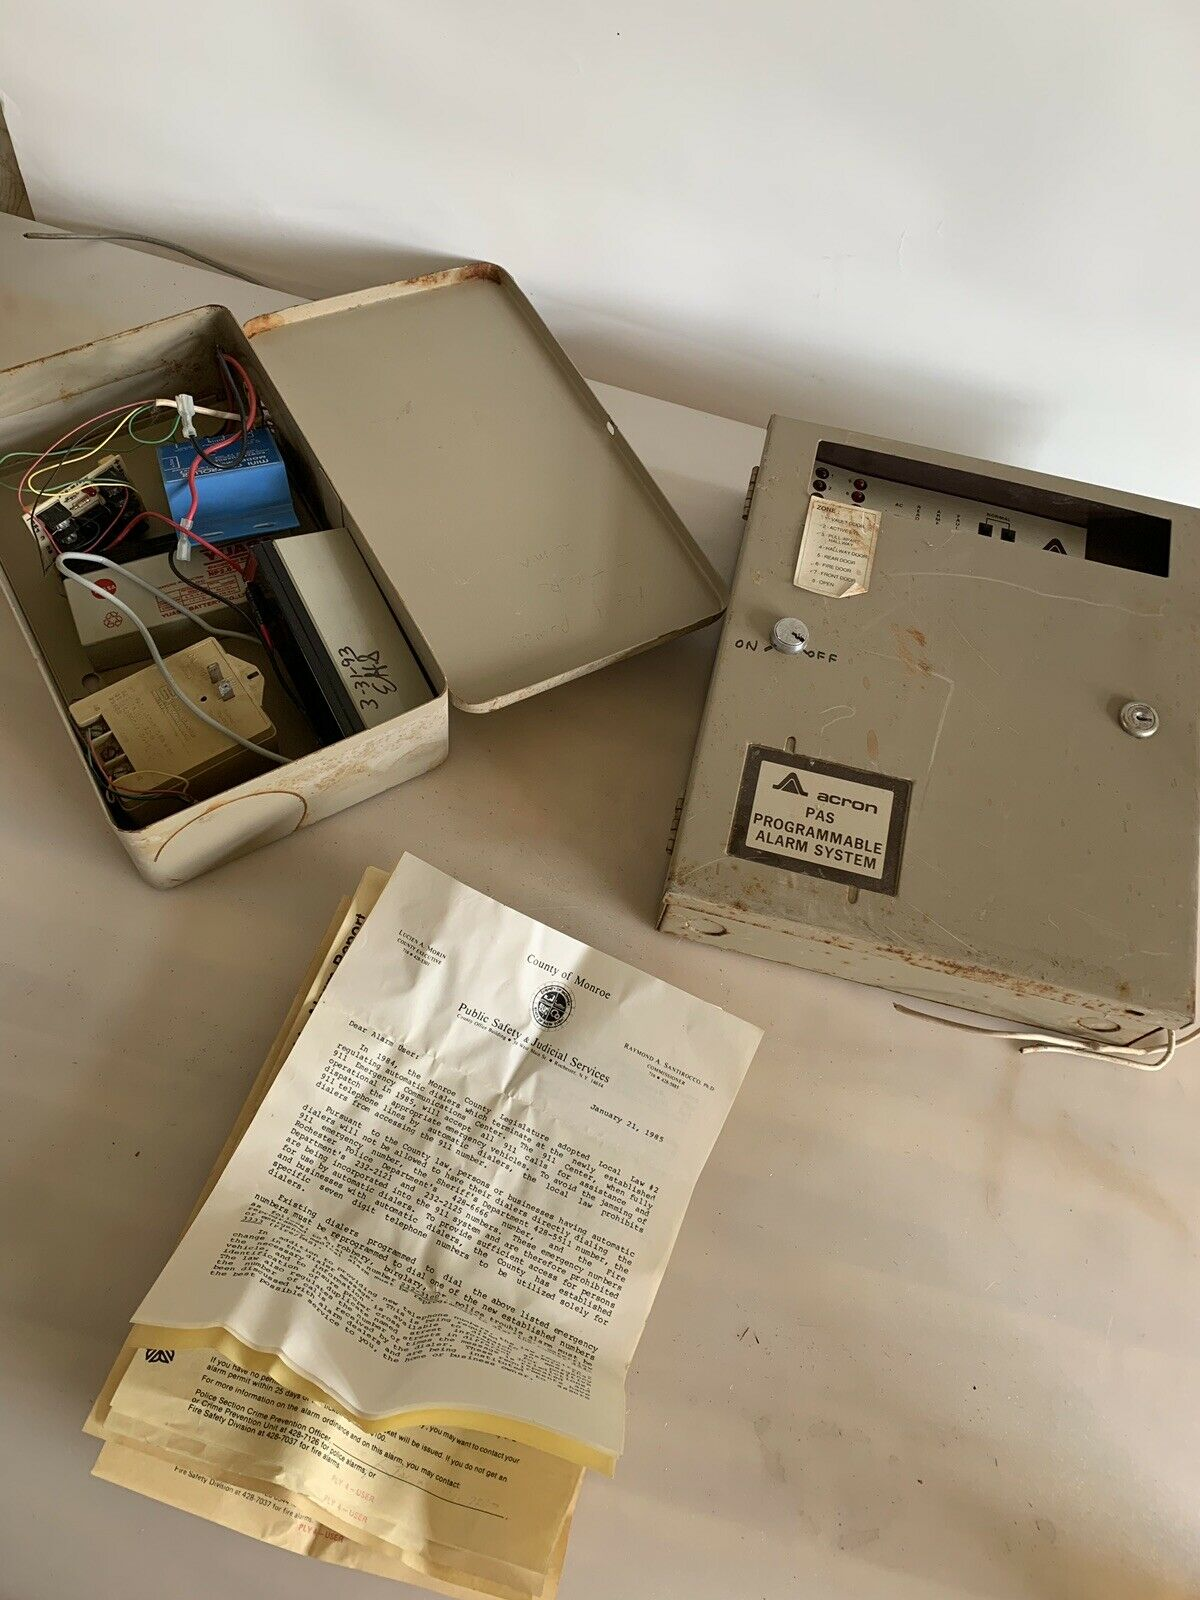 Vintage Acron PAS Programable Alarm System And Components 1983